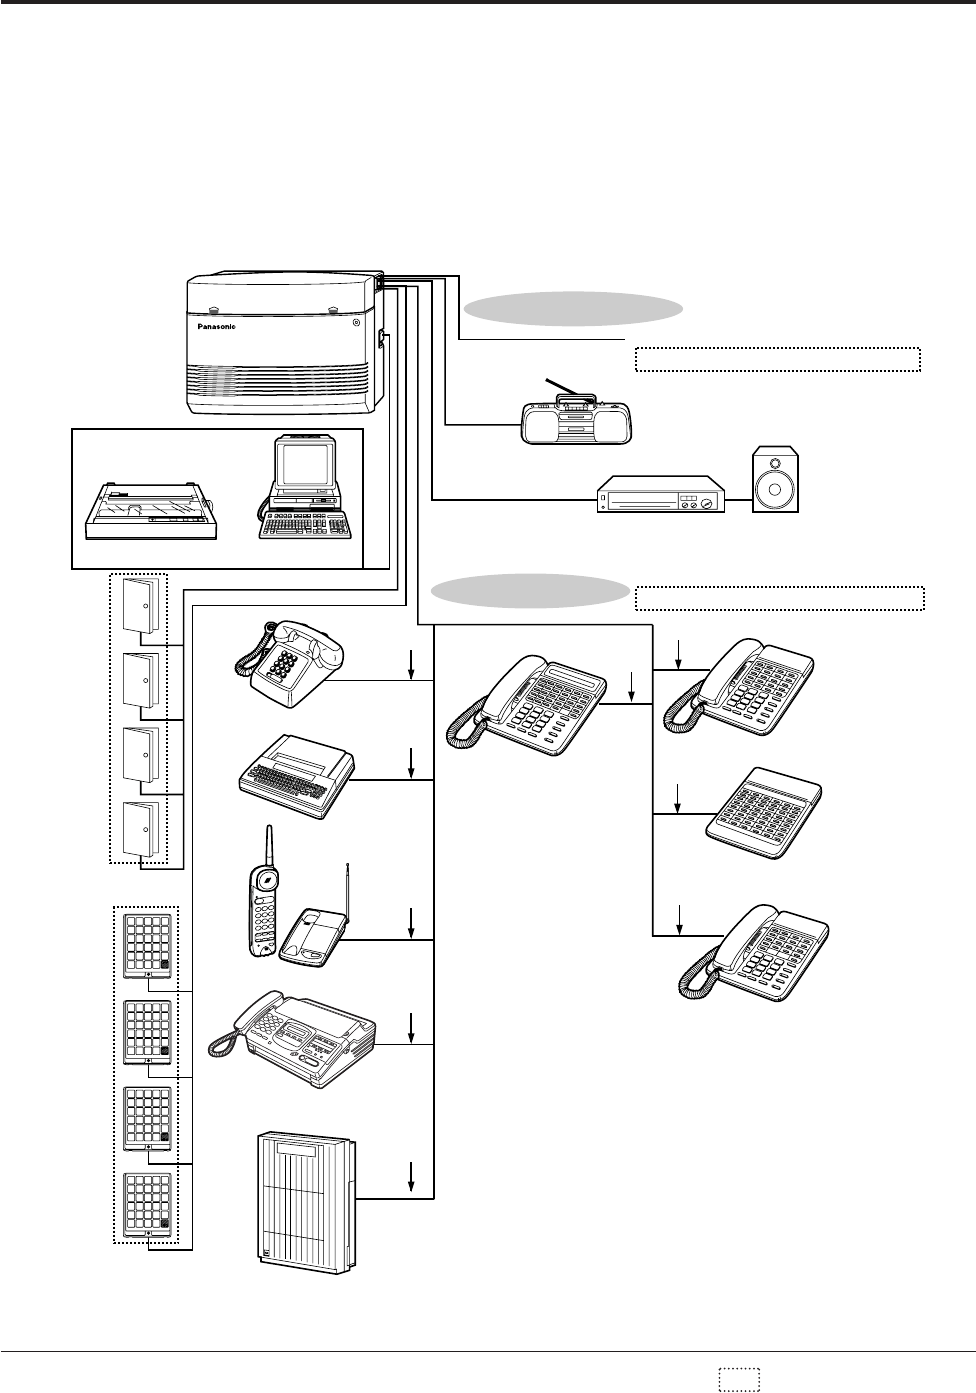 Page 16 of Panasonic Telephone Advanced Hybrid System User